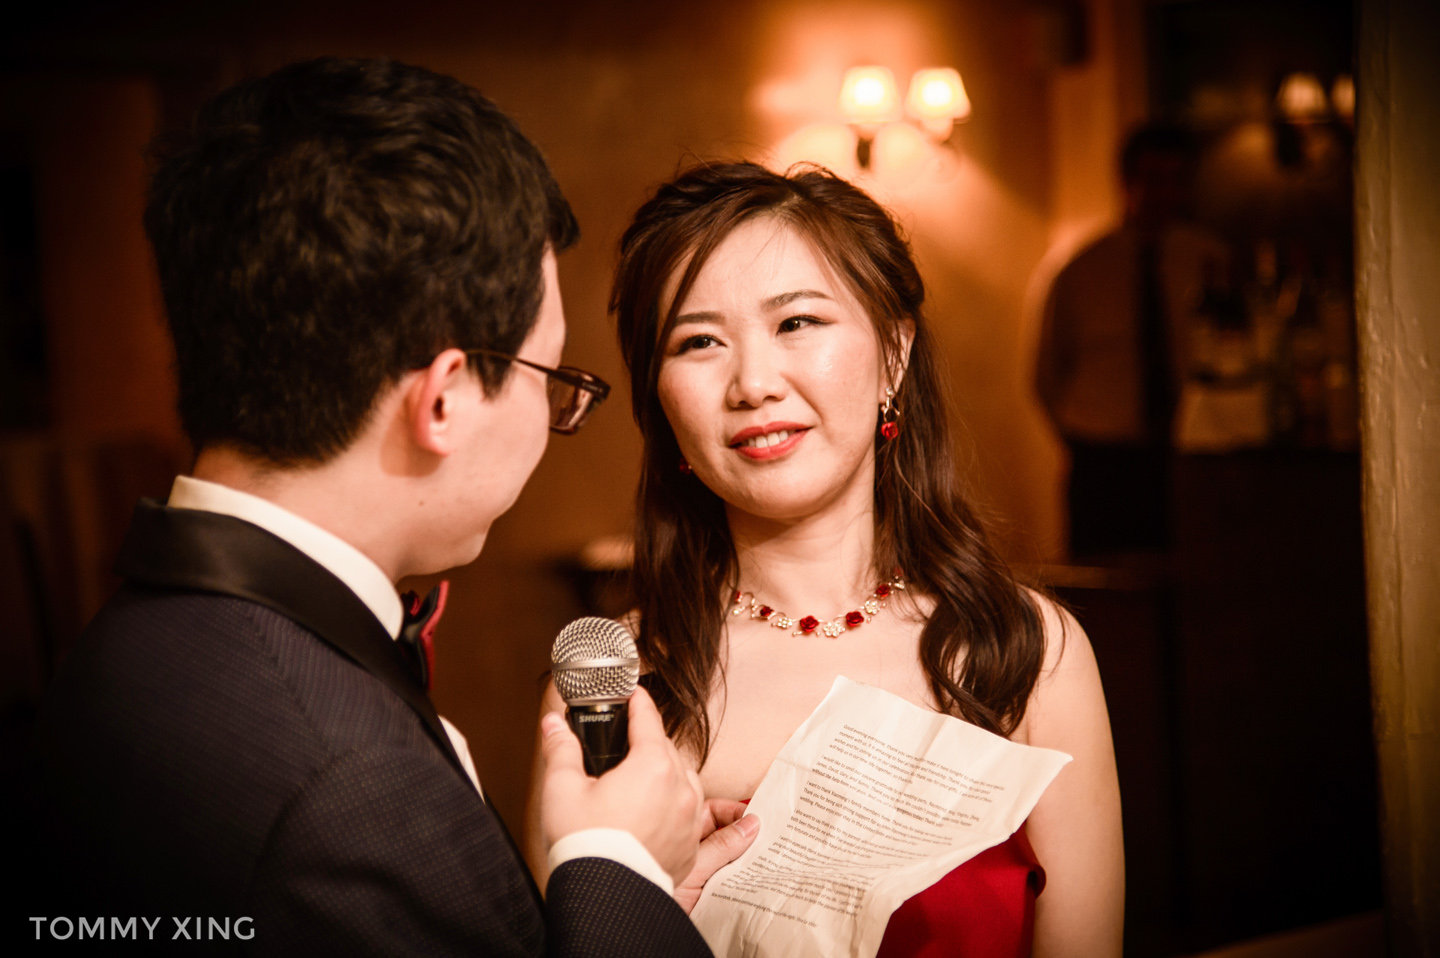 Los Angeles Wedding Photographer 洛杉矶婚礼婚纱摄影师 Tommy Xing-259.JPG